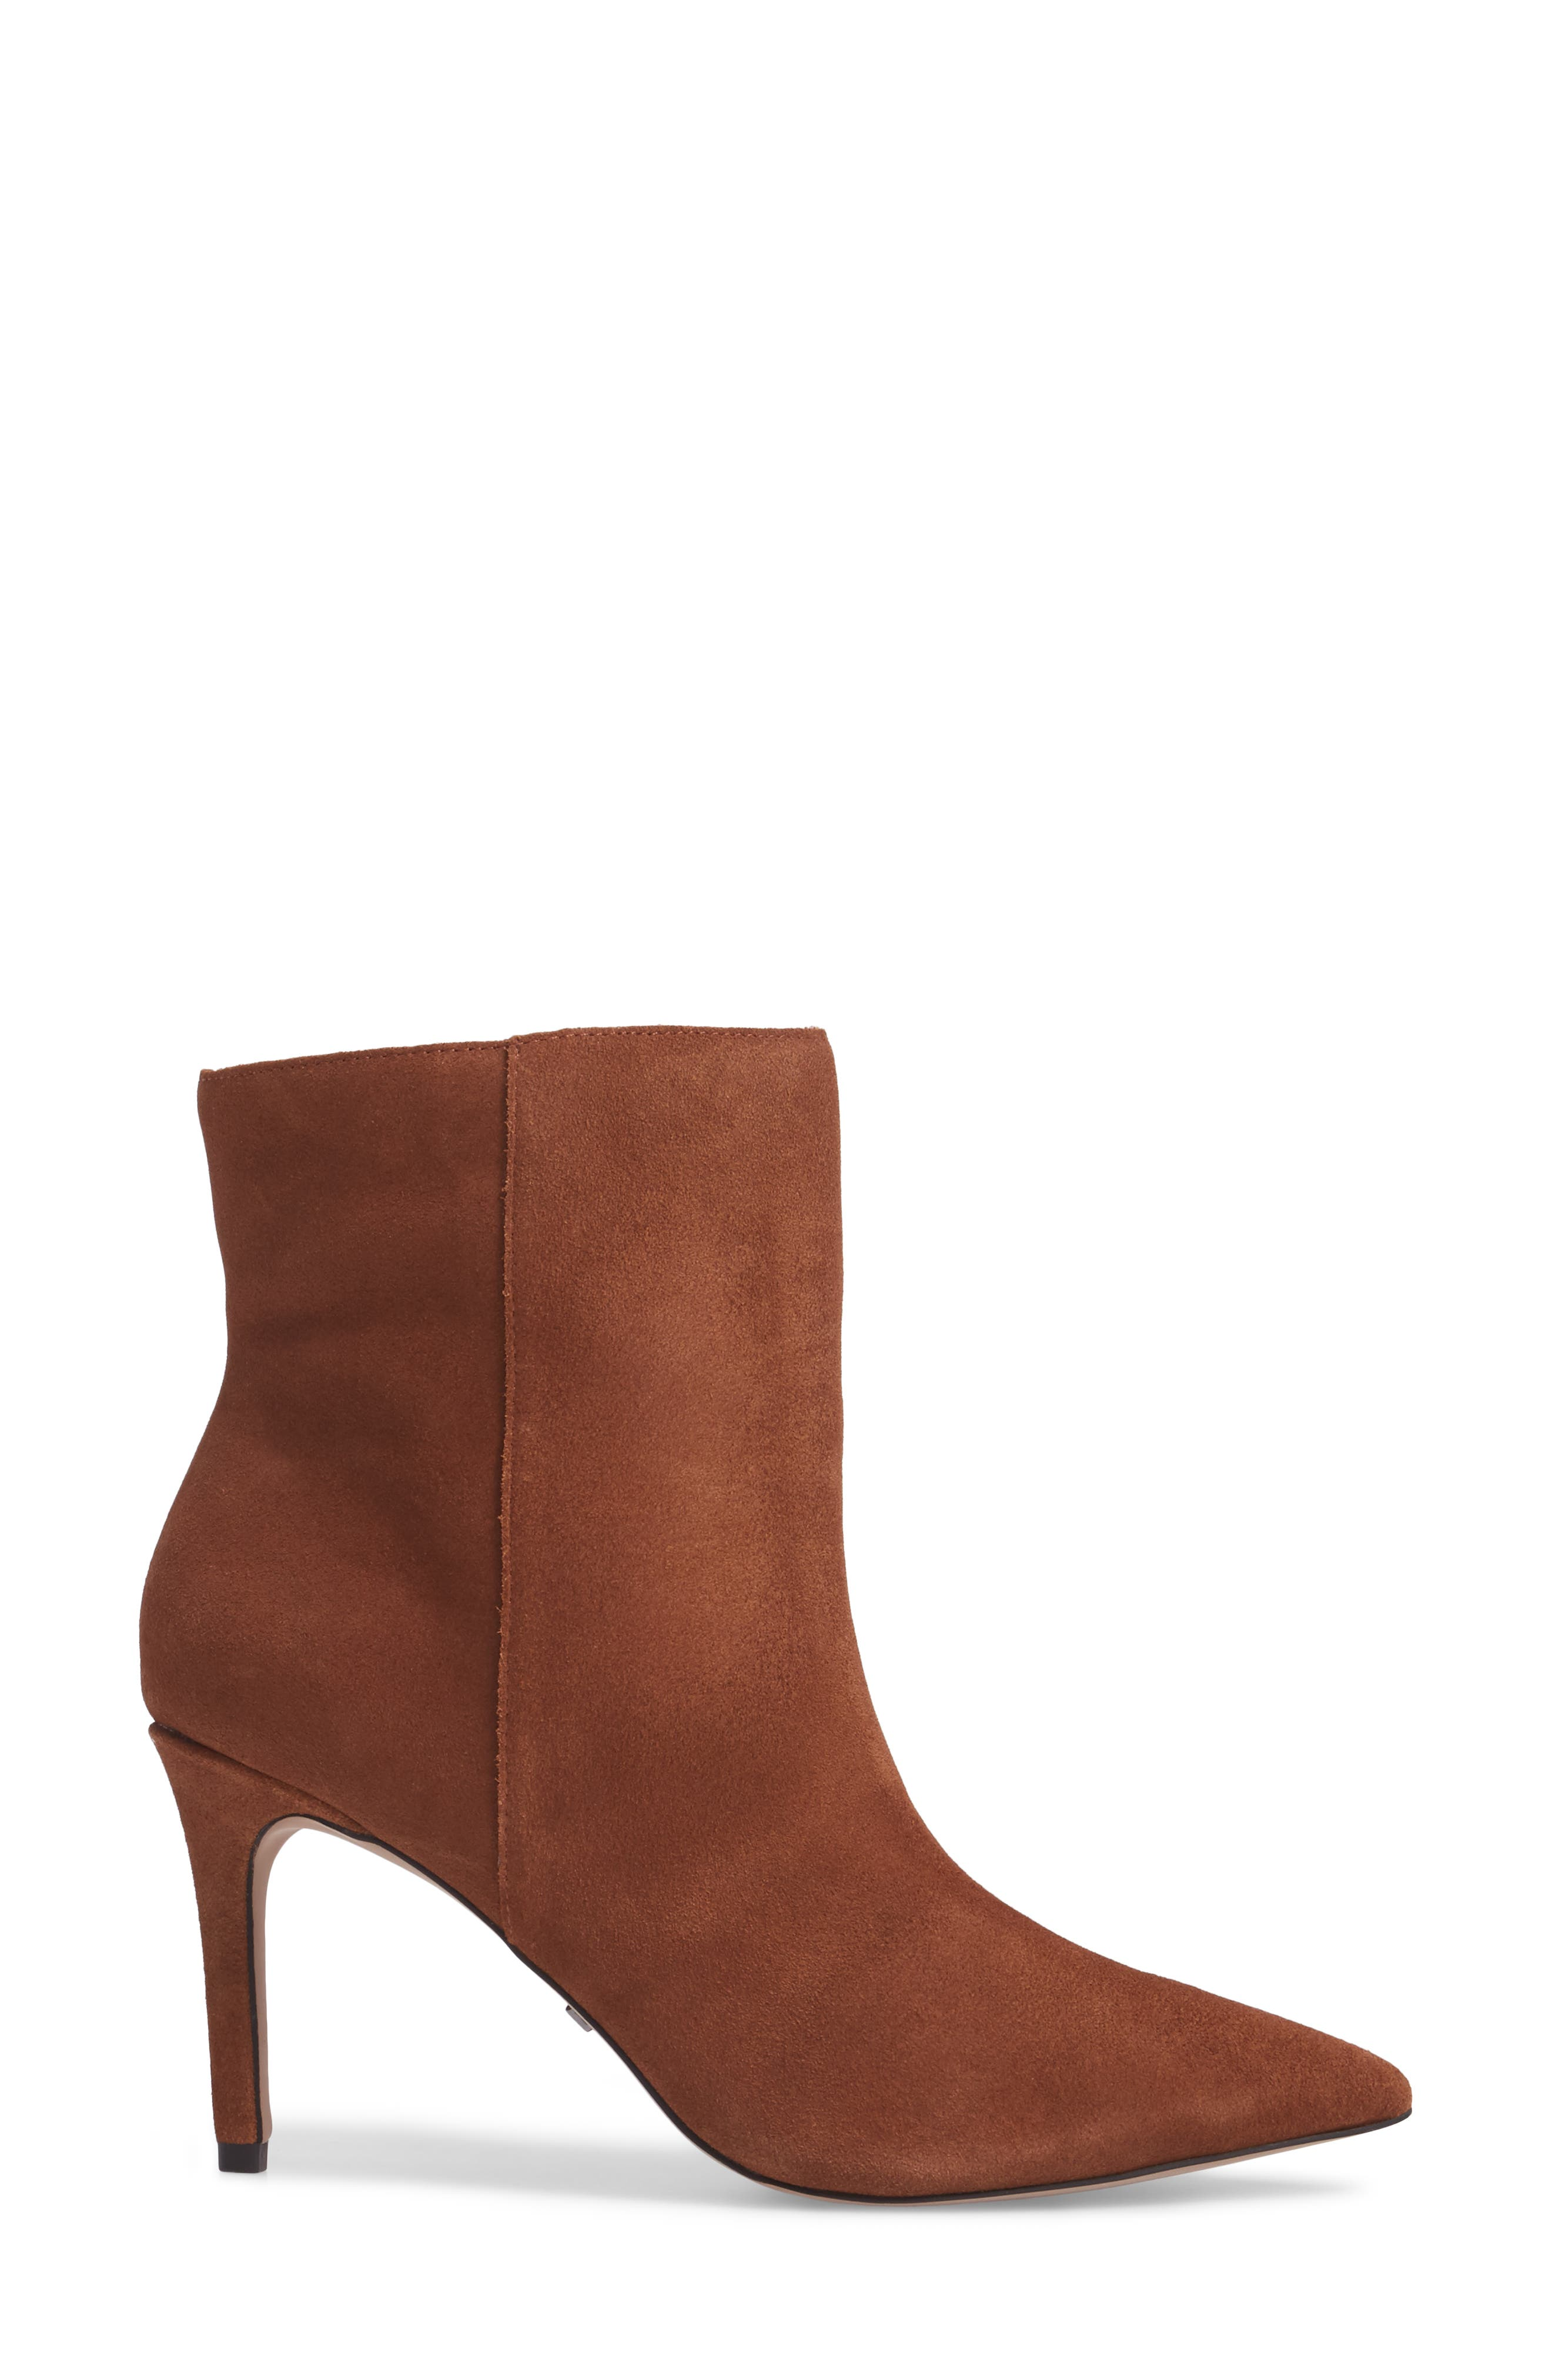 Holiday Stiletto Bootie,                             Alternate thumbnail 6, color,